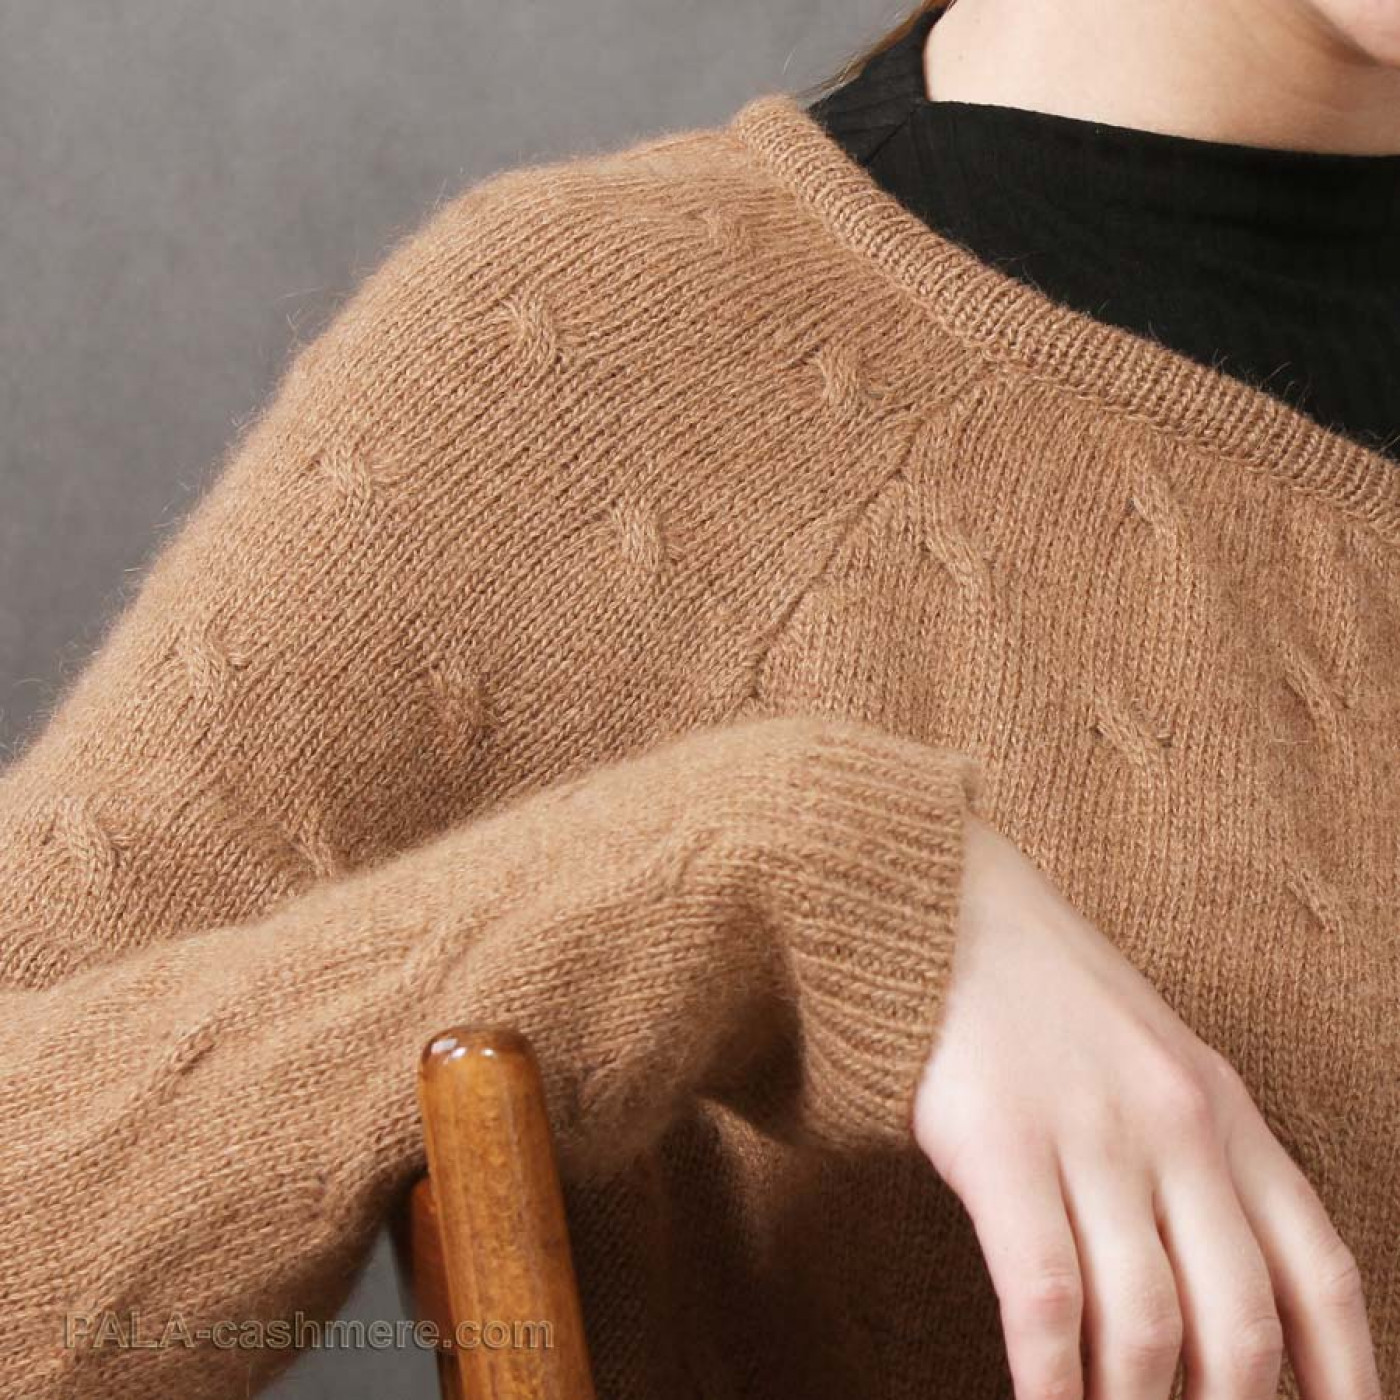 Cardigan from camel hair on a button with a pattern